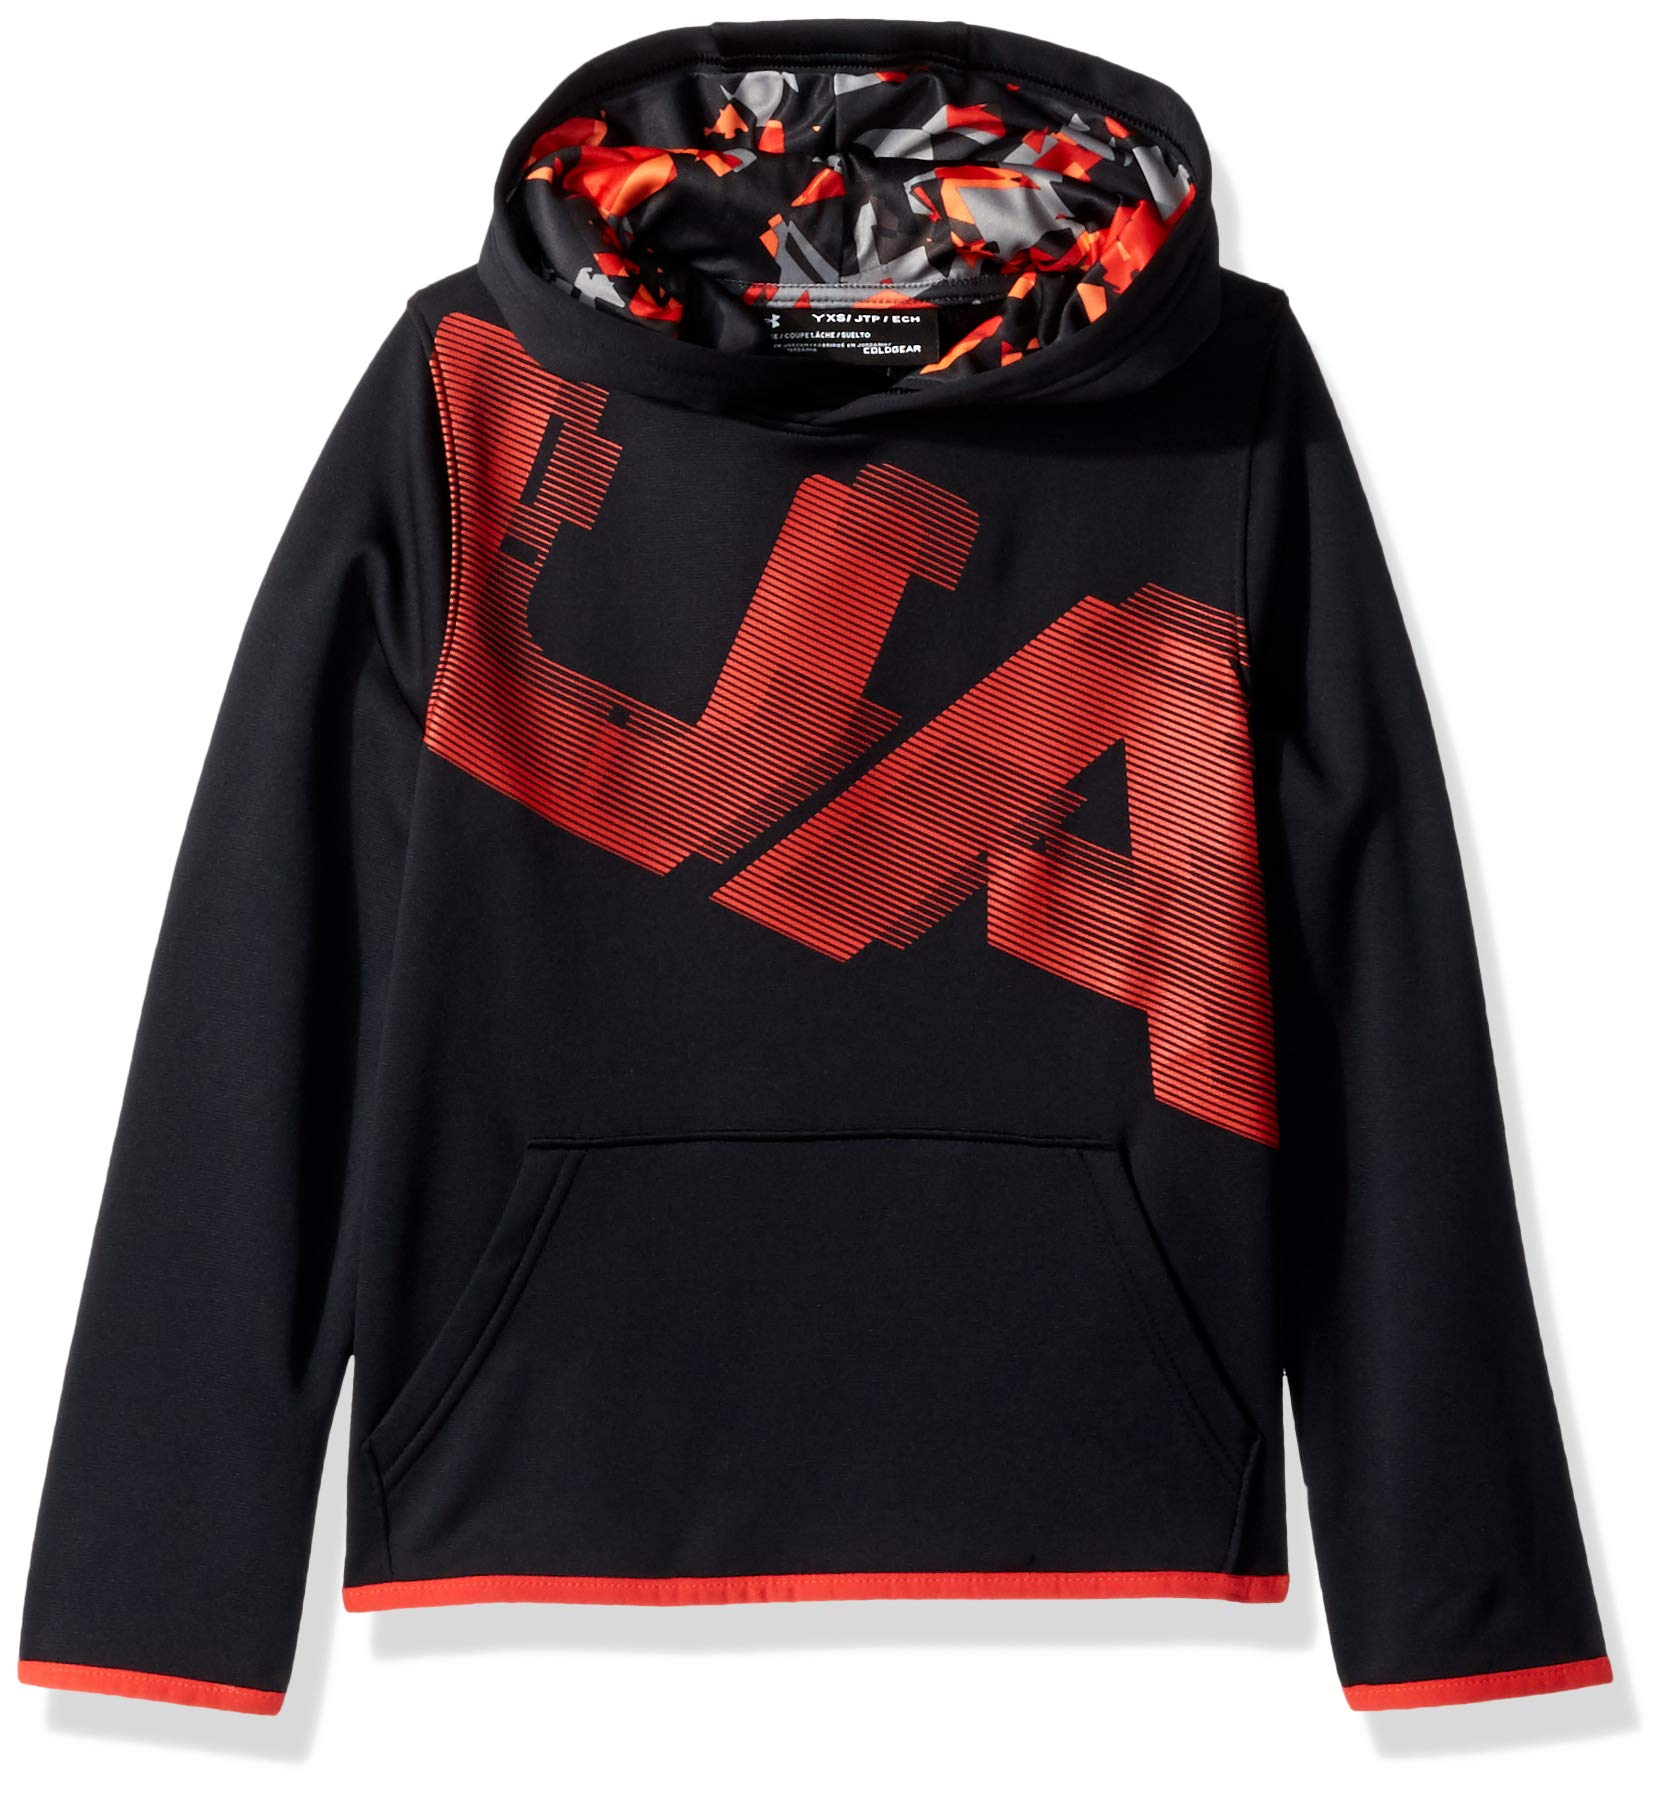 Under Armour Boys Fleece Highlight Printed Hoodie, Black (001)/Radio Red, Youth Small by Under Armour